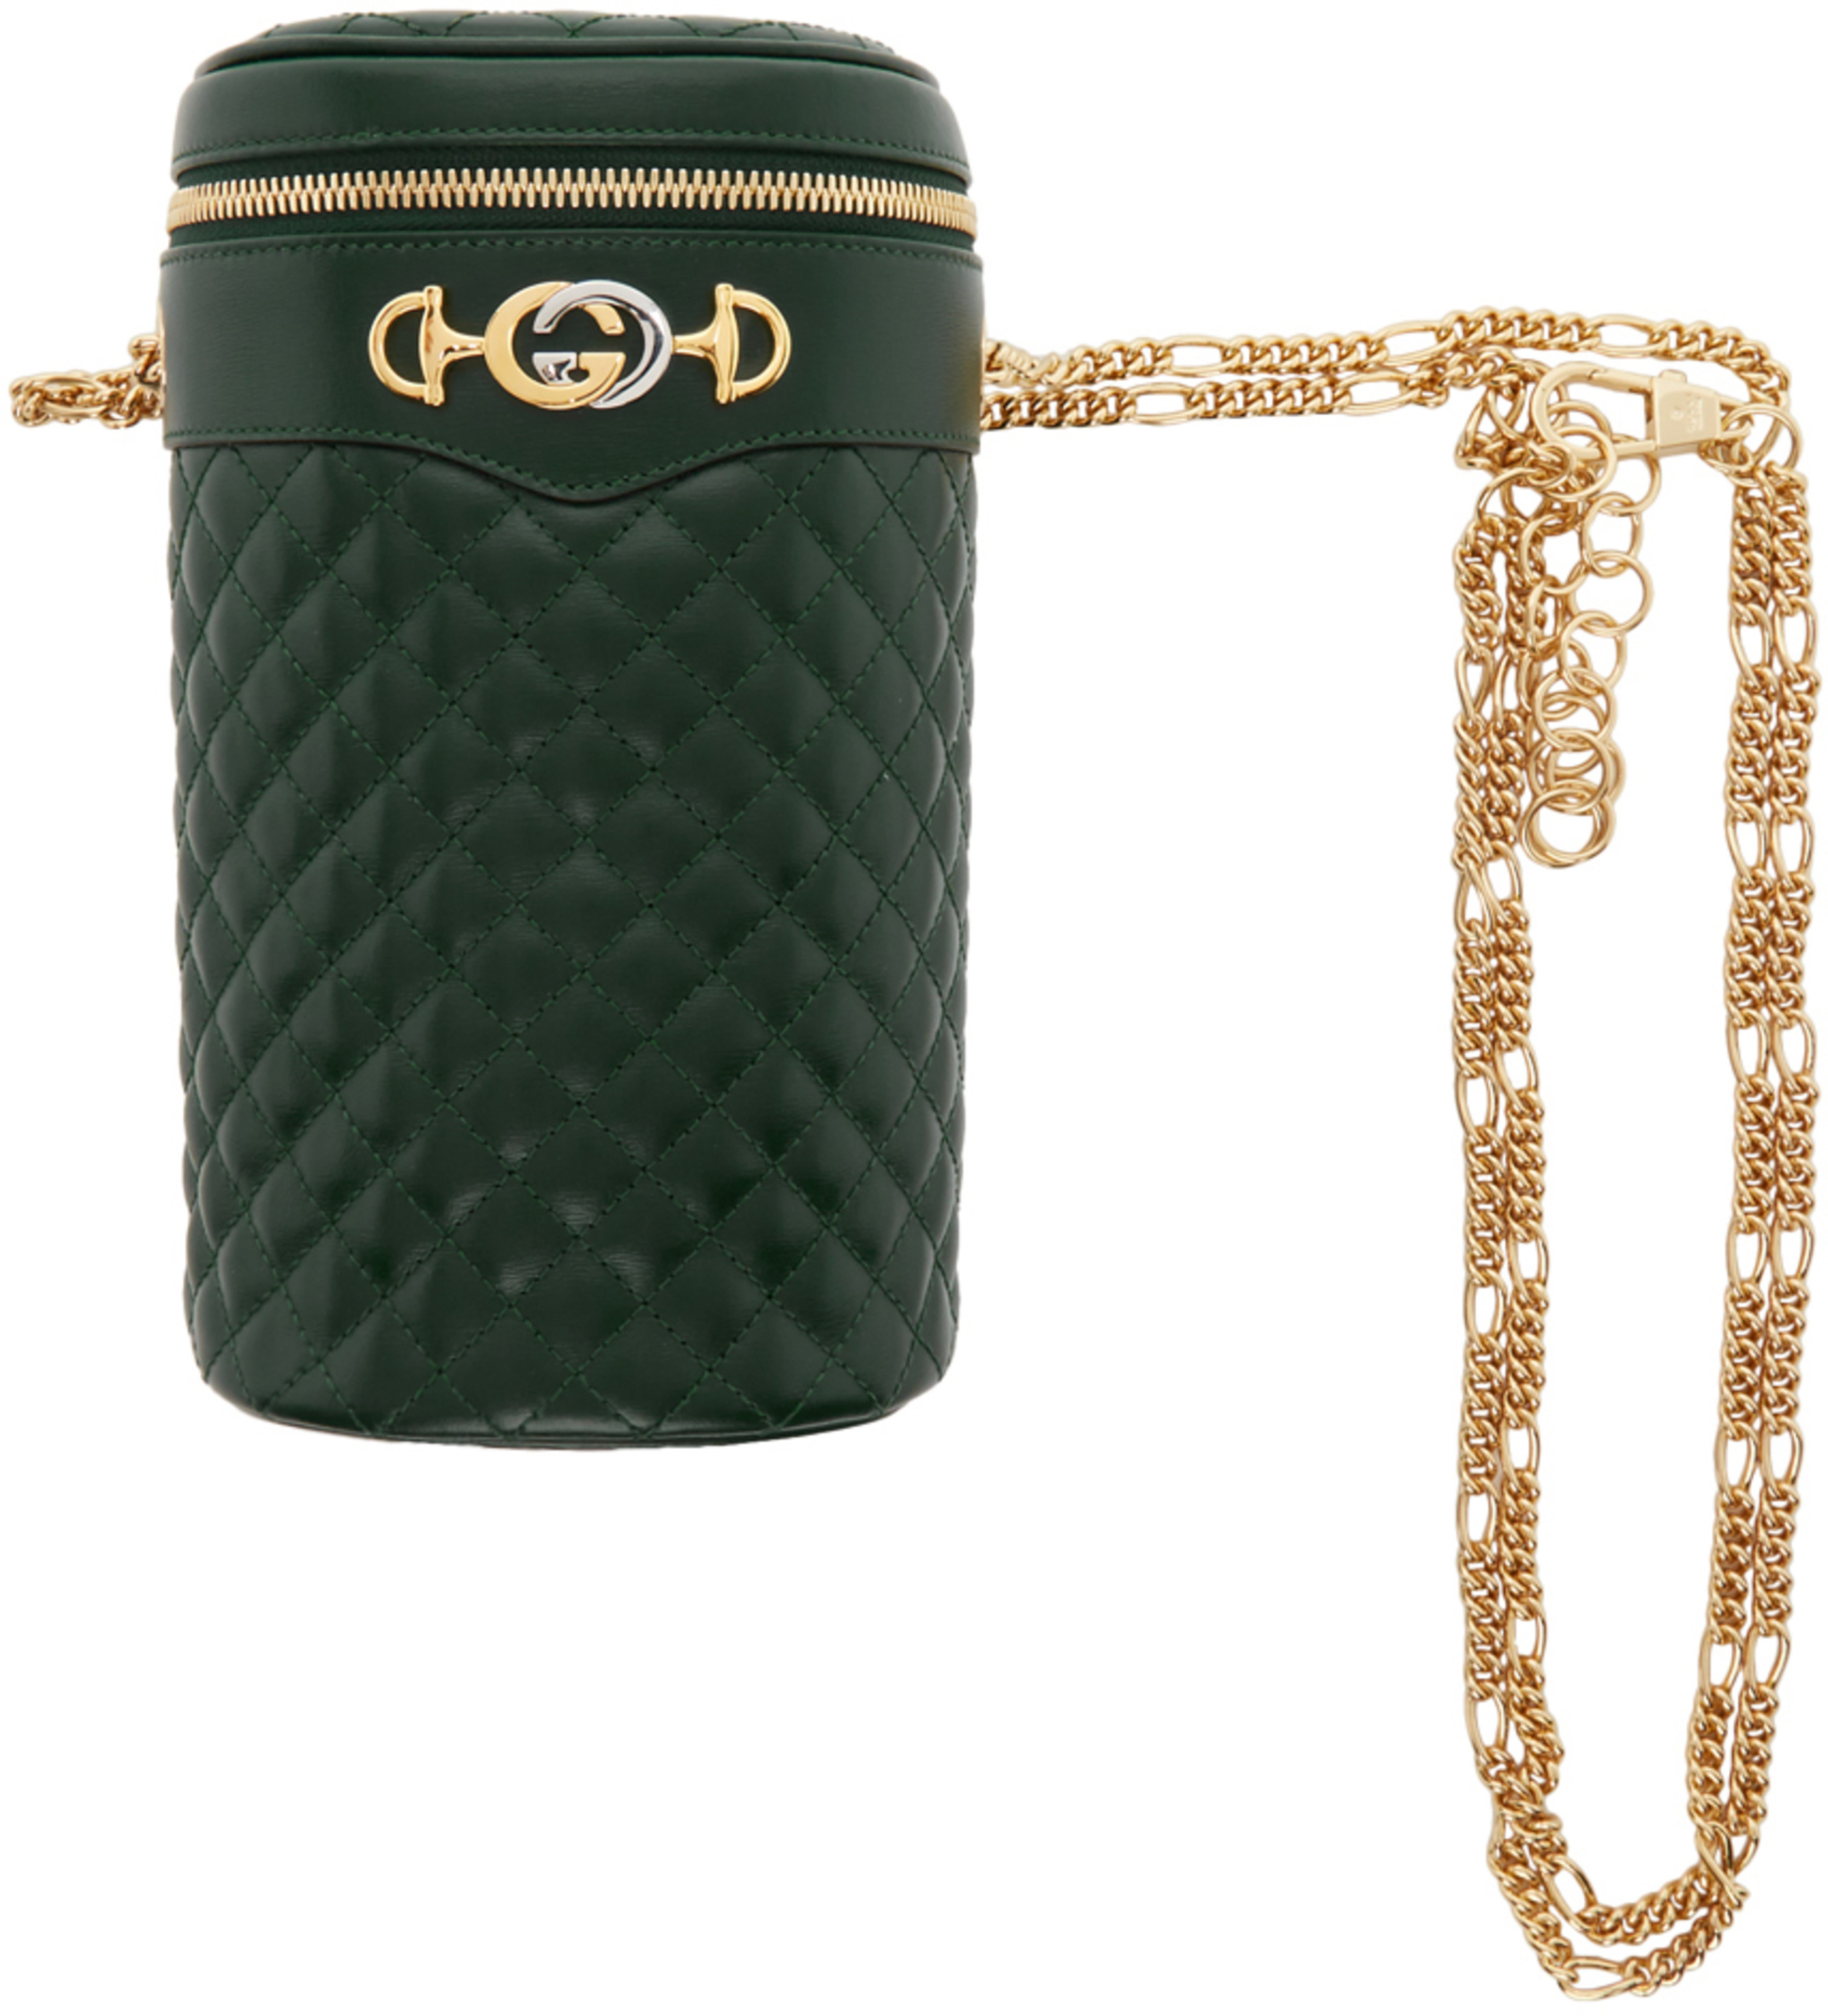 585a8975f21 Gucci pouches for Women